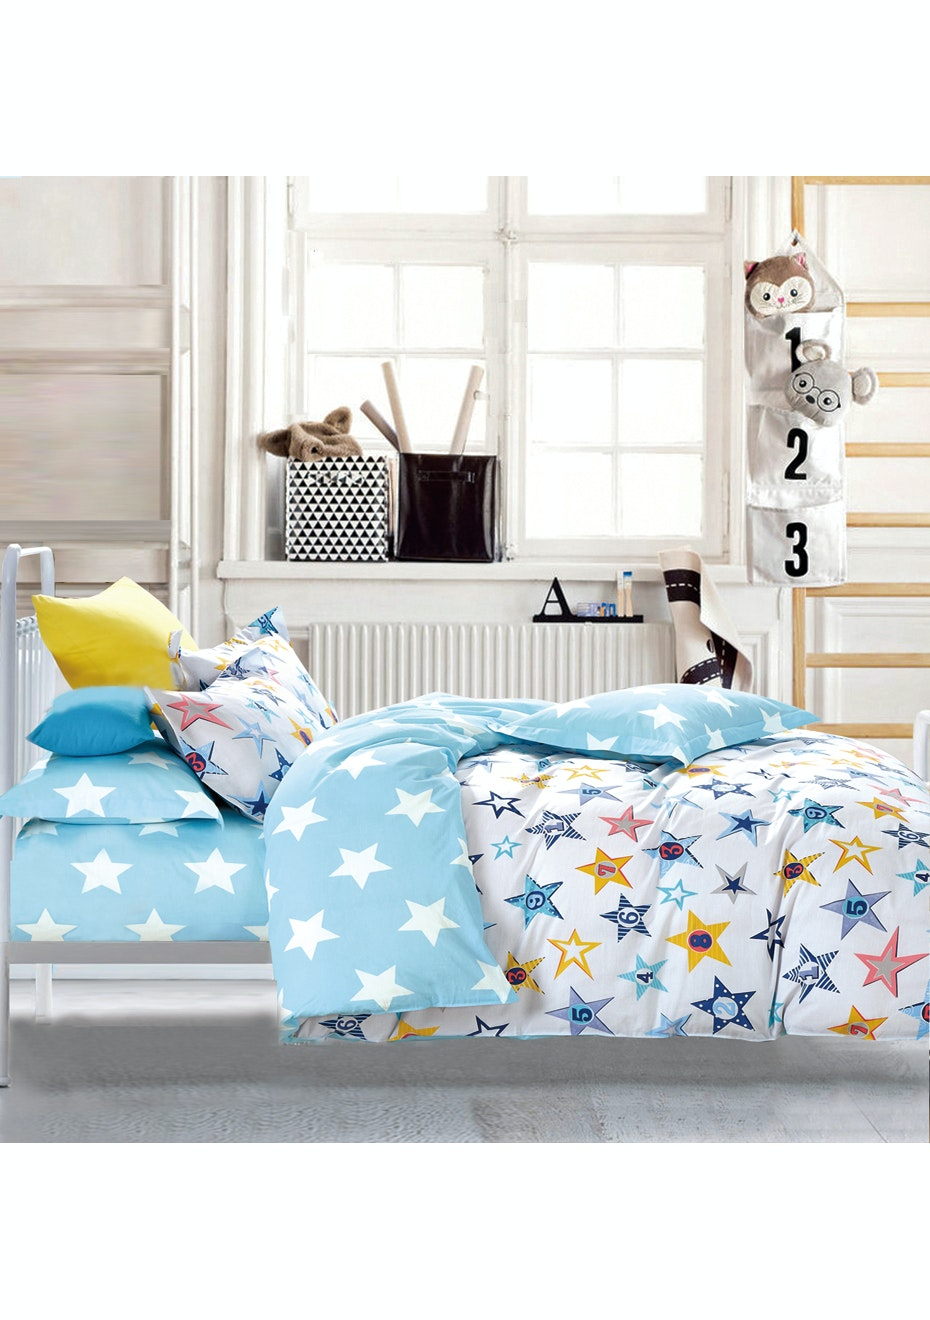 Starbright Quilt Cover Set - Reversible Design - 100% Cotton Double Bed